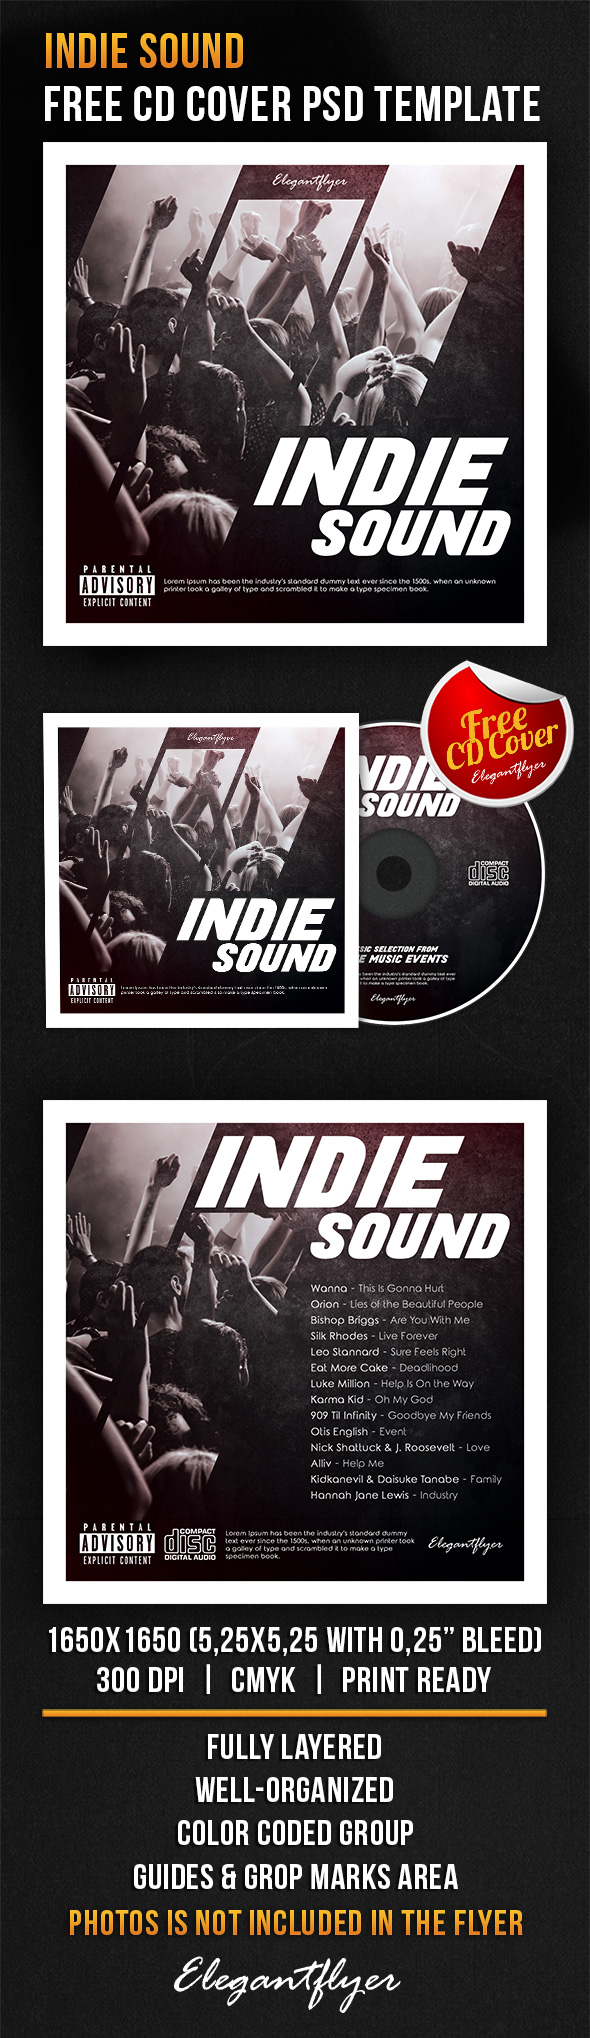 Indie Sound – Free CD Cover PSD Template